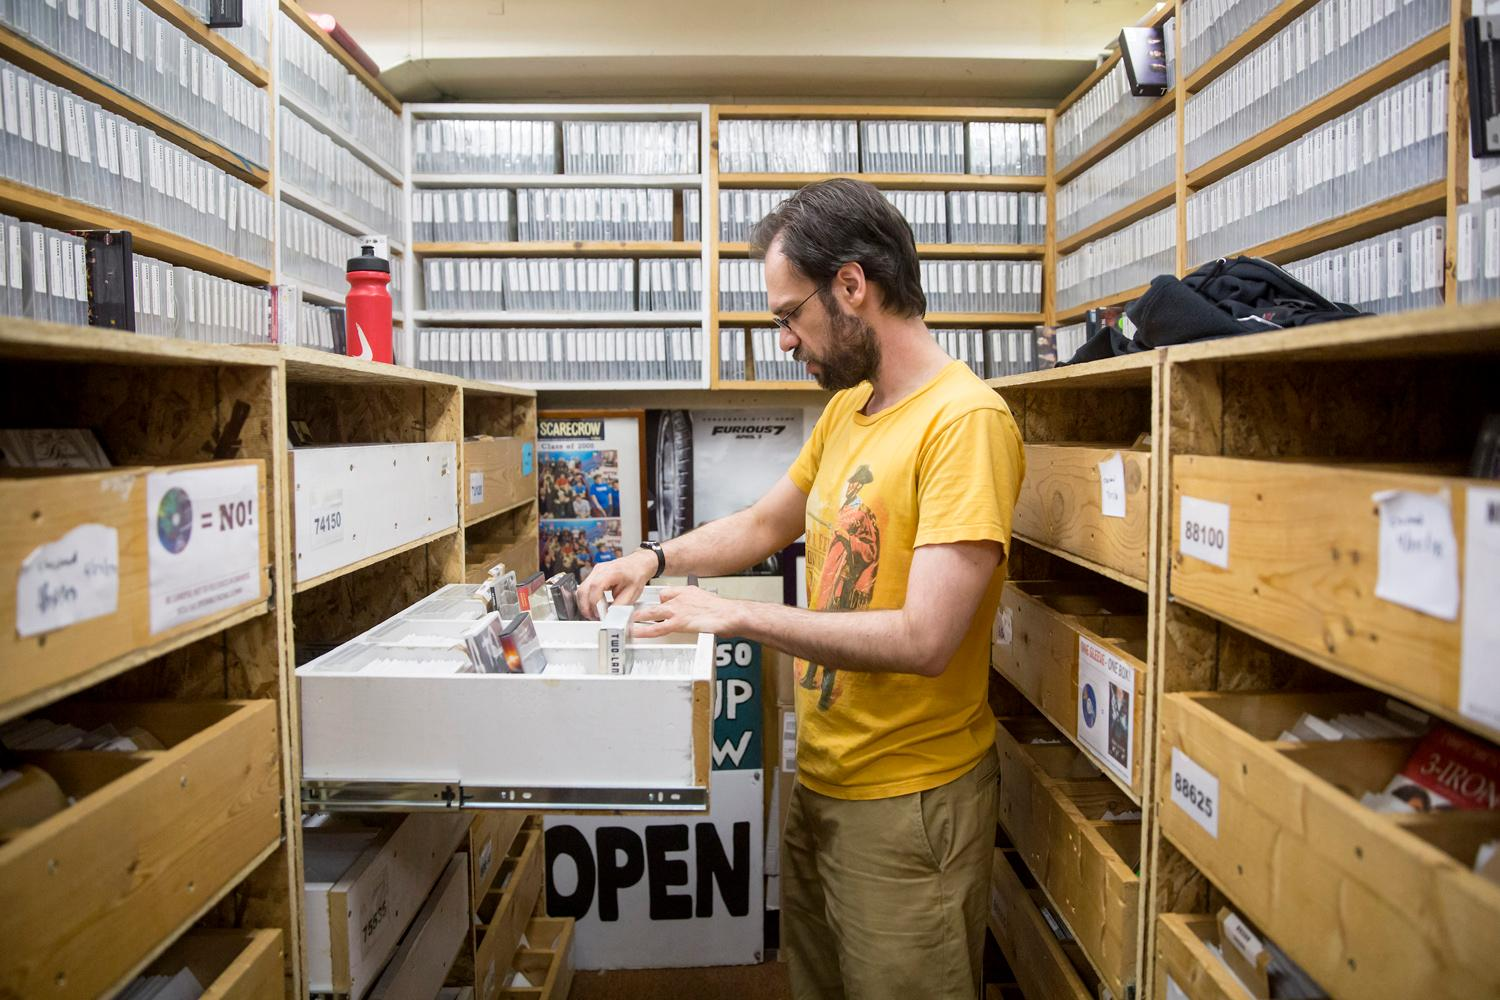 Every day, Inventory Manager Joel Fischer organizes the massive collection of titles at Scarecrow Video, the film rental store that has been serving Seattle for over 30 years. In 2014, the collection had grown to become such a significant archive that a non-profit was formed. The store continues to grow at a rate of 3,000-5,000 titles each year, representing 129 countries and over 126 languages. (Sy Bean / Seattle Refined)